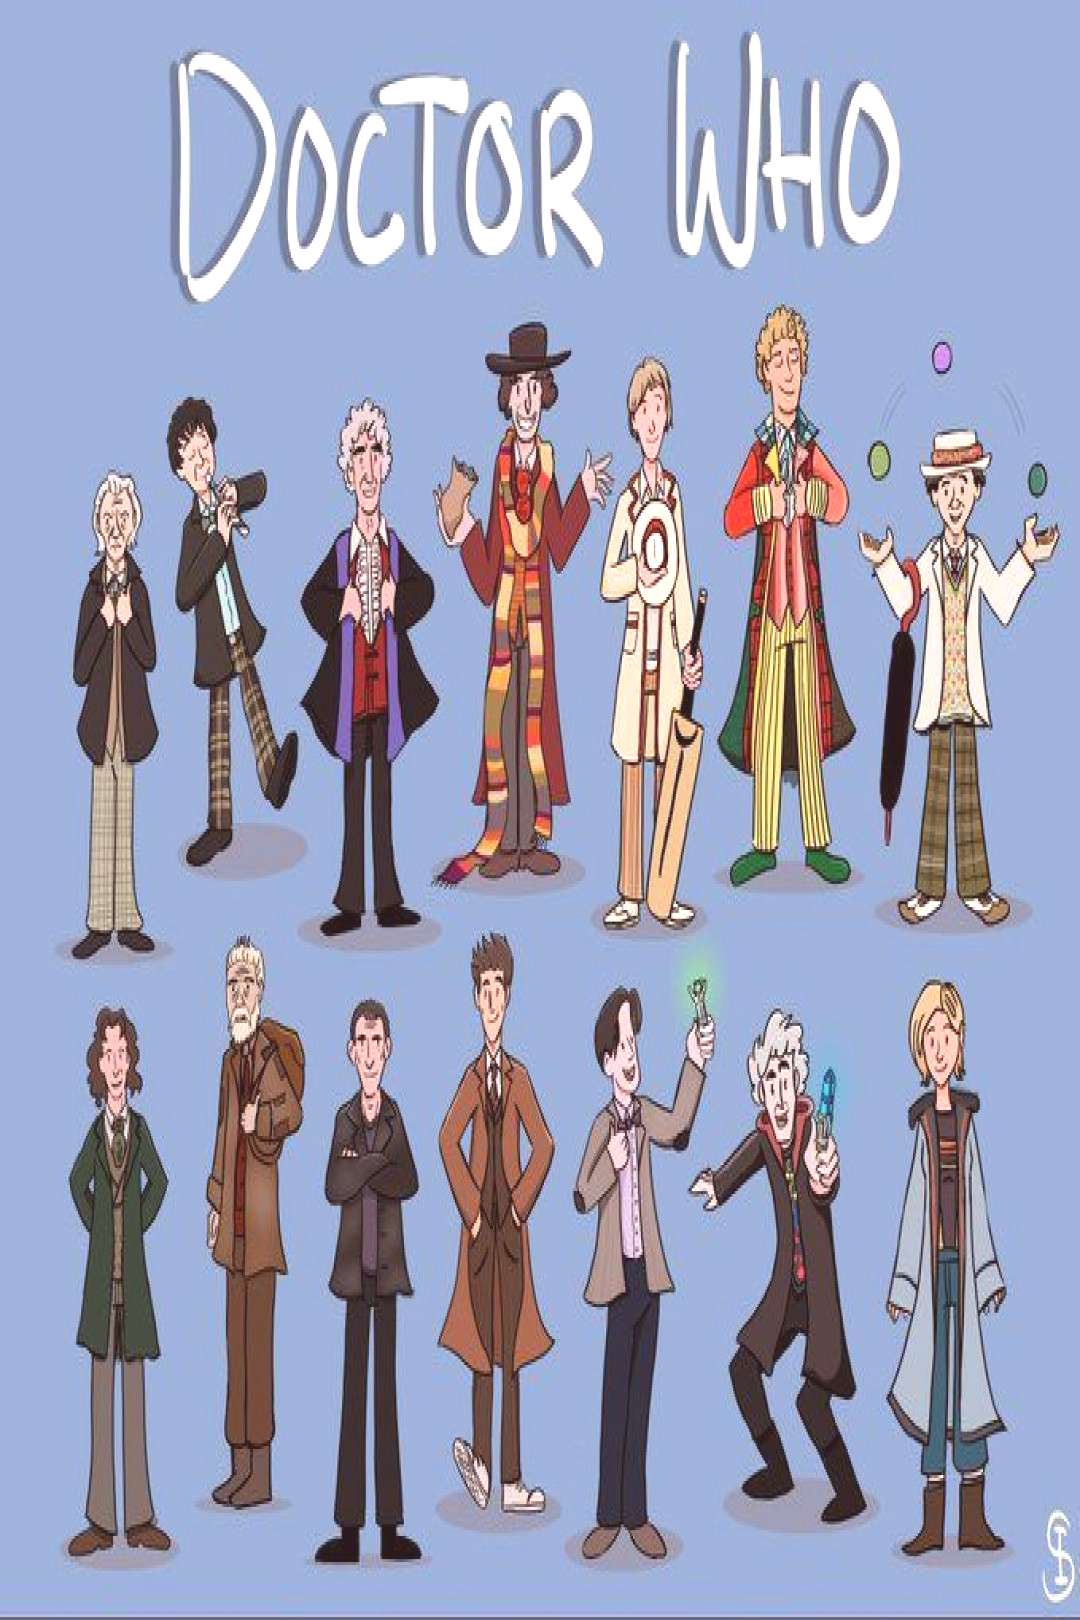 Game of thrones all the doctors, the doctor dbd, clara oswald and the doctor, the doctor logo, the